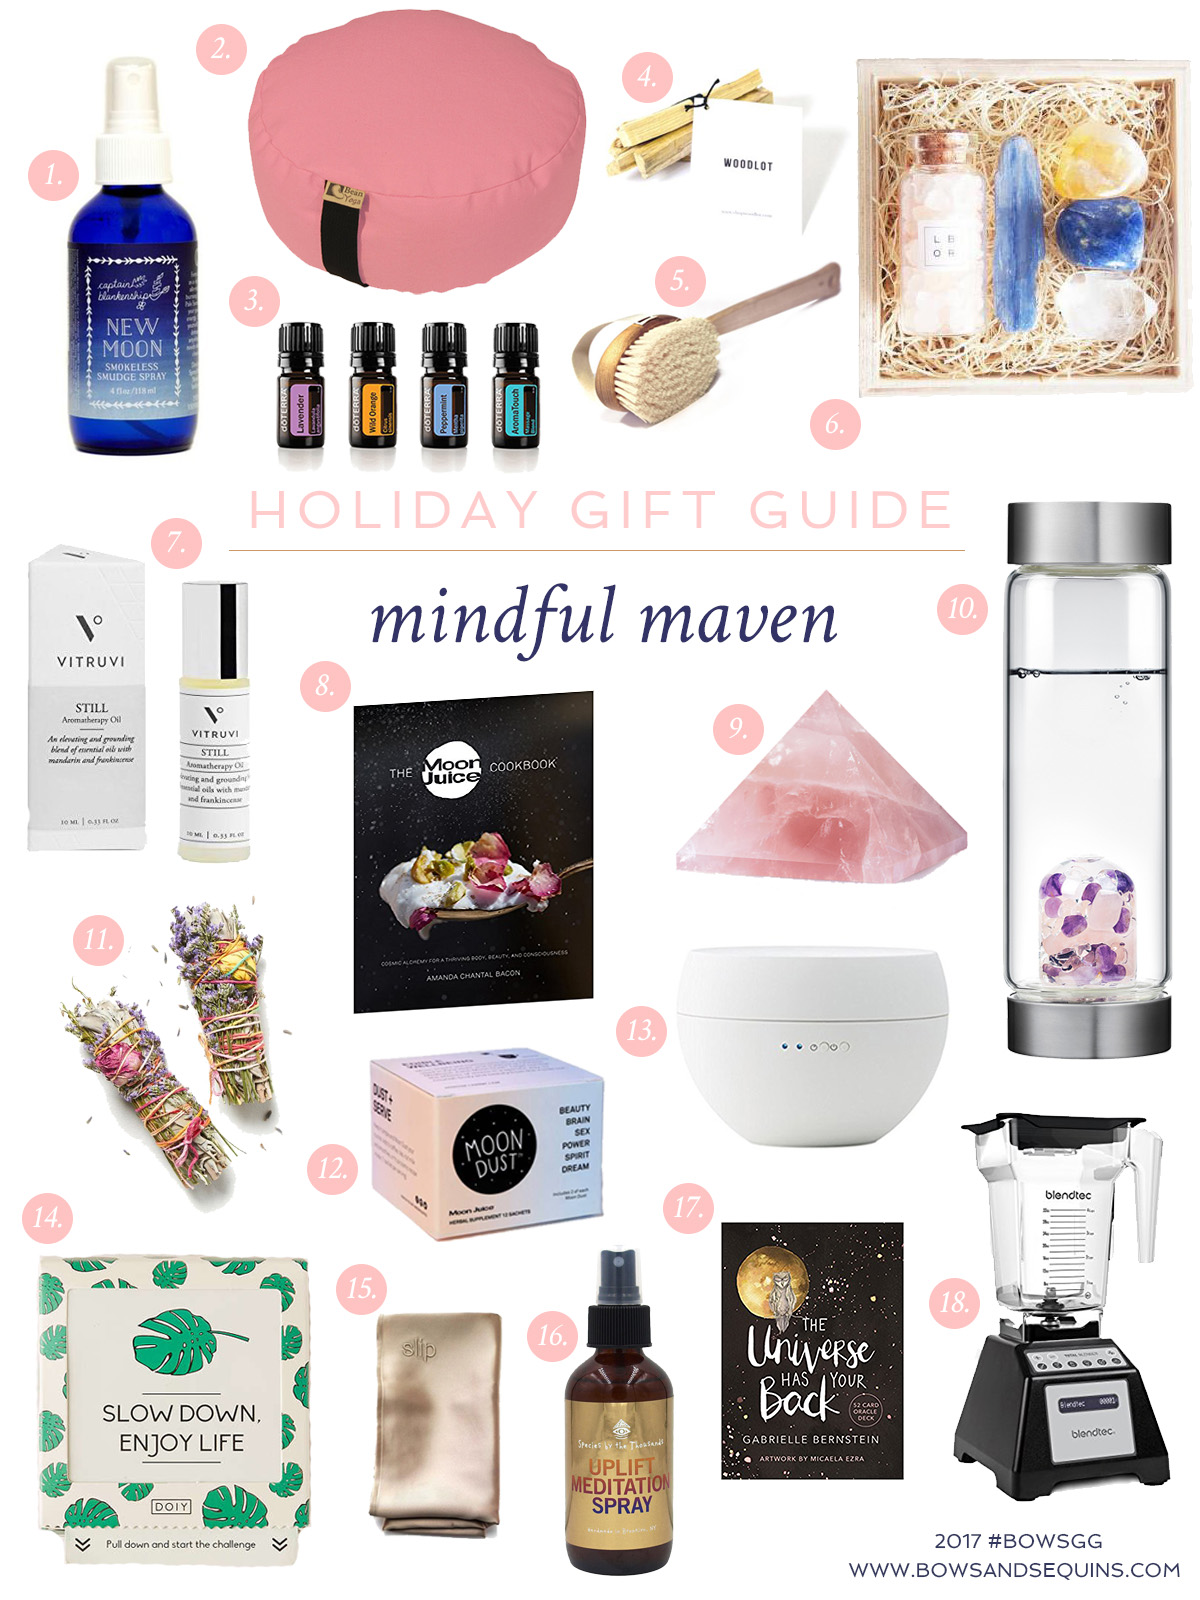 Bows & Sequins shares the best mindful gifts for the wellness types on your list this holiday season.